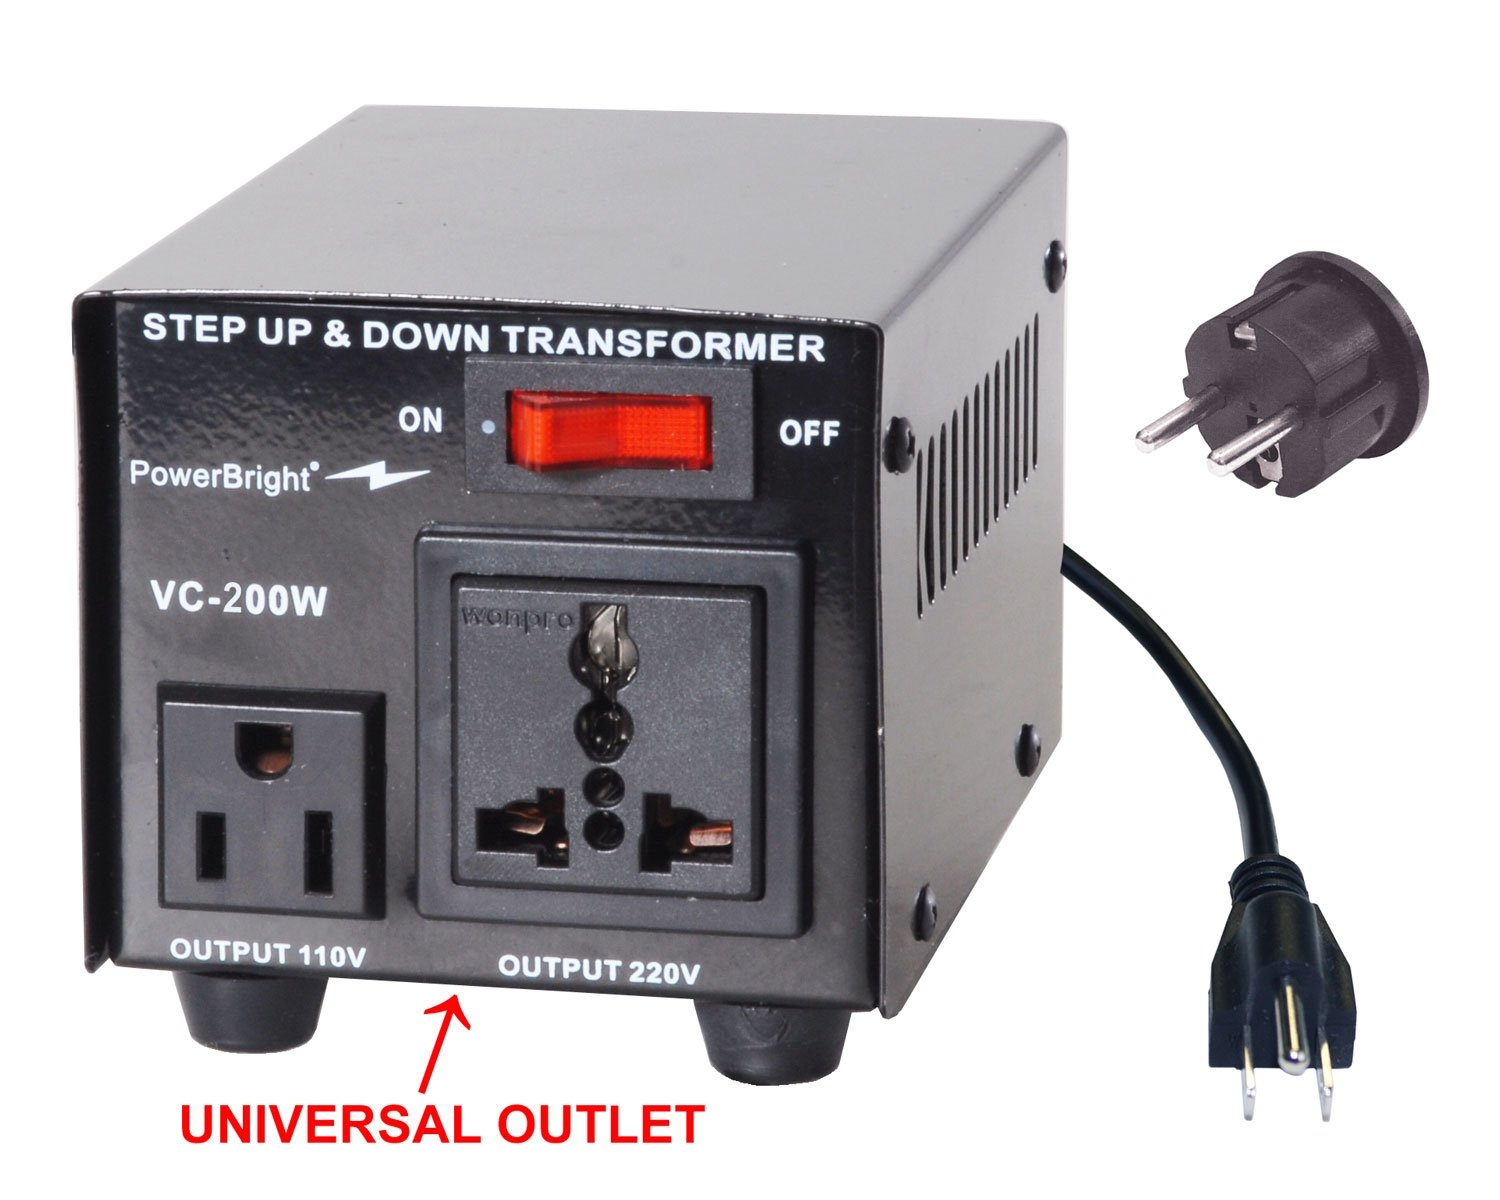 Amazon power bright vc200w voltage transformer 200 watt step up amazon power bright vc200w voltage transformer 200 watt step updown converter 110120 volt 220240 volt garden outdoor publicscrutiny Images